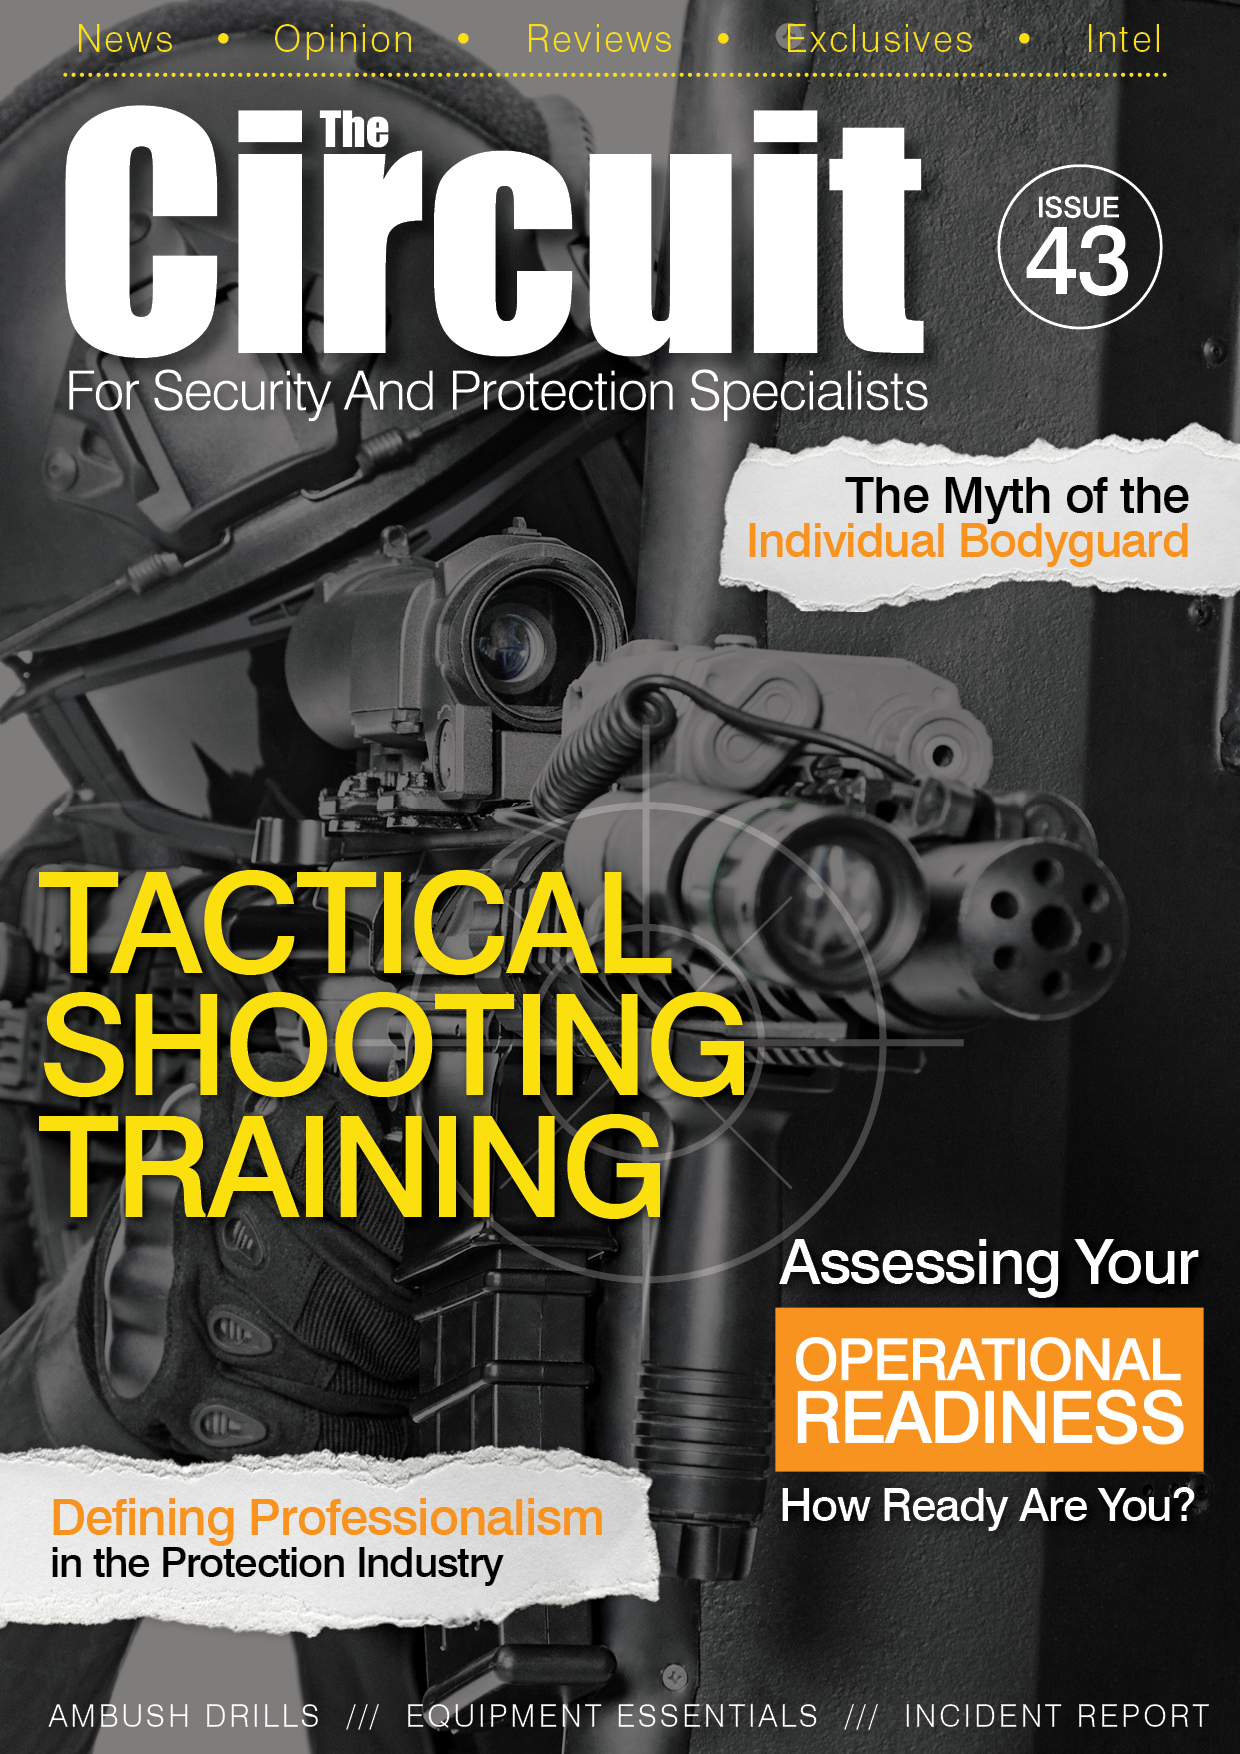 Cover of issue 43 Circuit Magazine